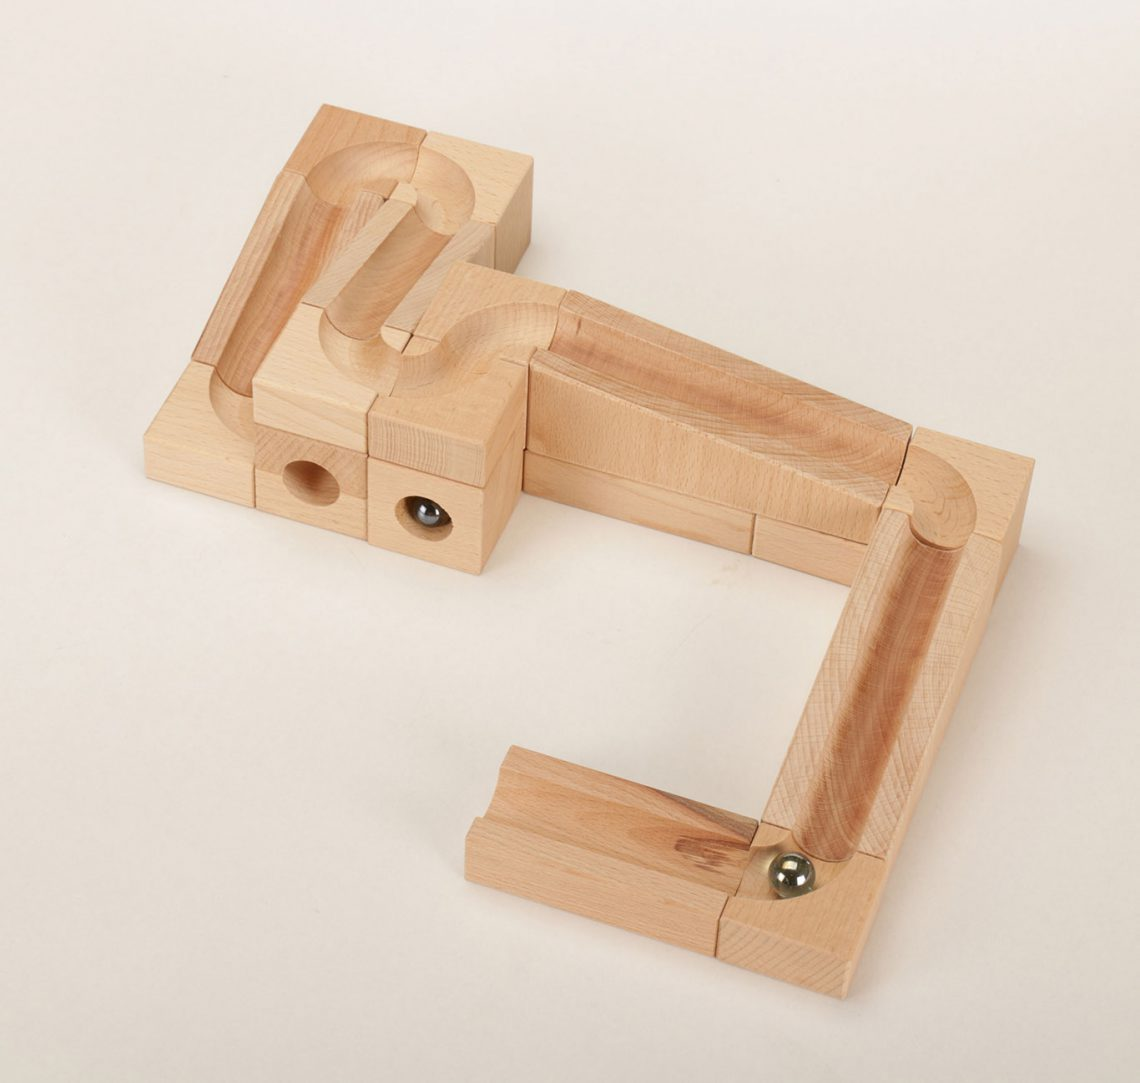 6-marbel wooden toy